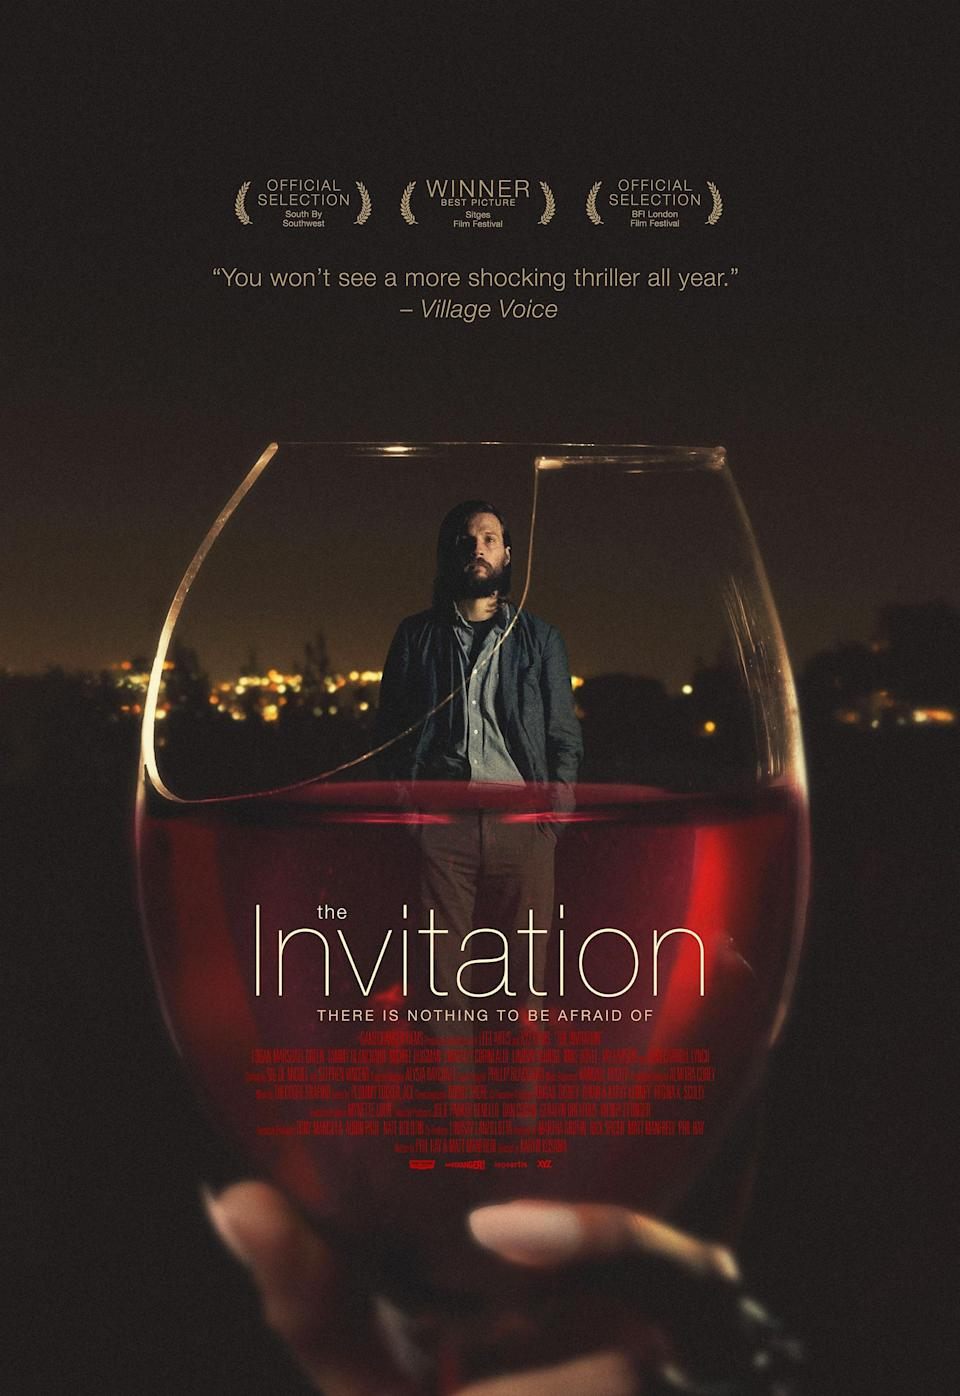 """<p>""""<em>The Invitation</em> is a hidden gem of a horror movie,"""" Rosa says of this Karyn Kusama–directed indie. """"The plot is simple but effective: Guests gather for a dinner party, and as the night goes on, they start to wonder if the hosts have ulterior motives. You truly do not know the answer until the very end—and let me tell you, the payoff is satisfying."""" </p> <p><a href=""""https://www.netflix.com/title/80048977"""" rel=""""nofollow noopener"""" target=""""_blank"""" data-ylk=""""slk:Available to stream on Netflix"""" class=""""link rapid-noclick-resp""""><em>Available to stream on Netflix</em></a></p>"""